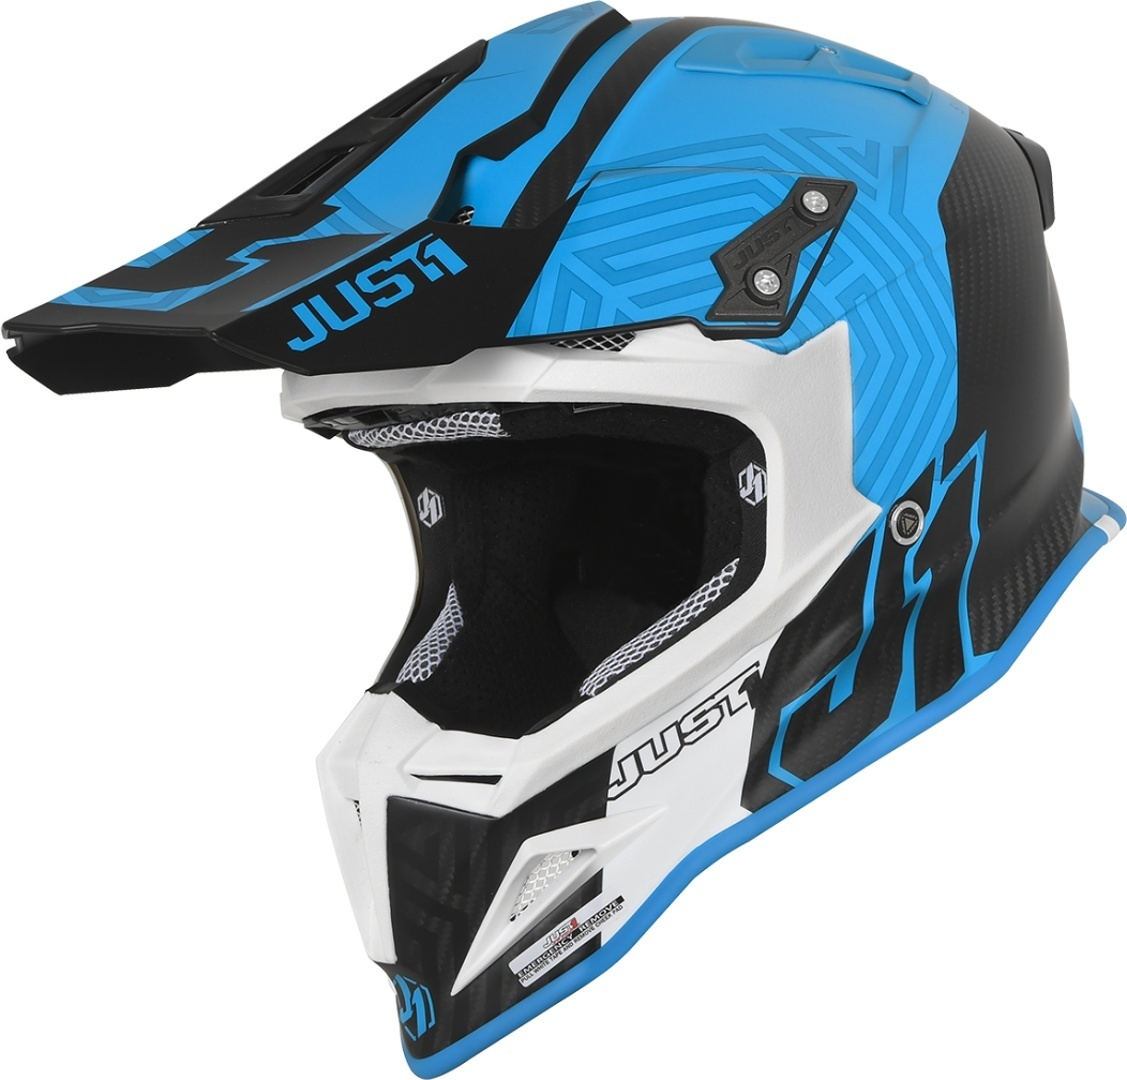 Just1 J12 Syncro Carbon Motocross Helm, weiss-türkis-blau, Größe XS, weiss-türkis-blau, Größe XS